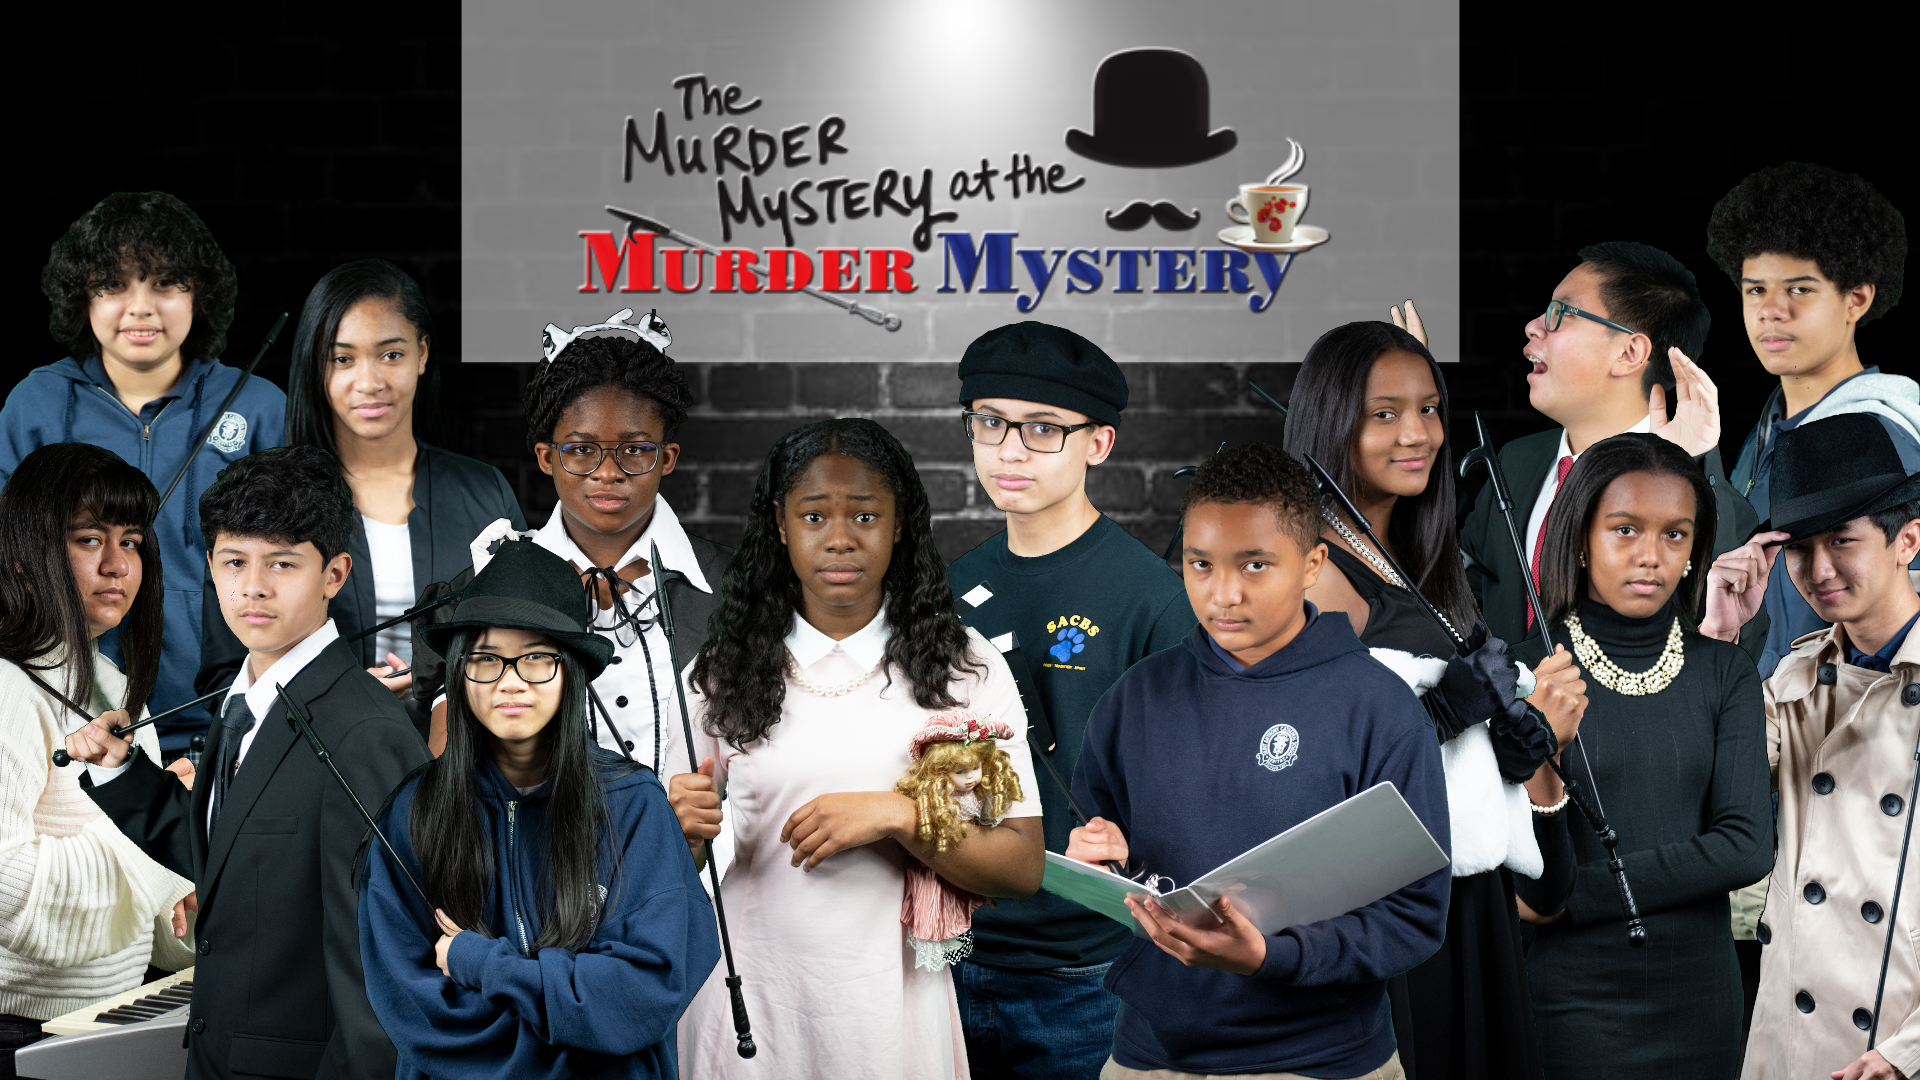 Murder Mystery at the Murder Mystery